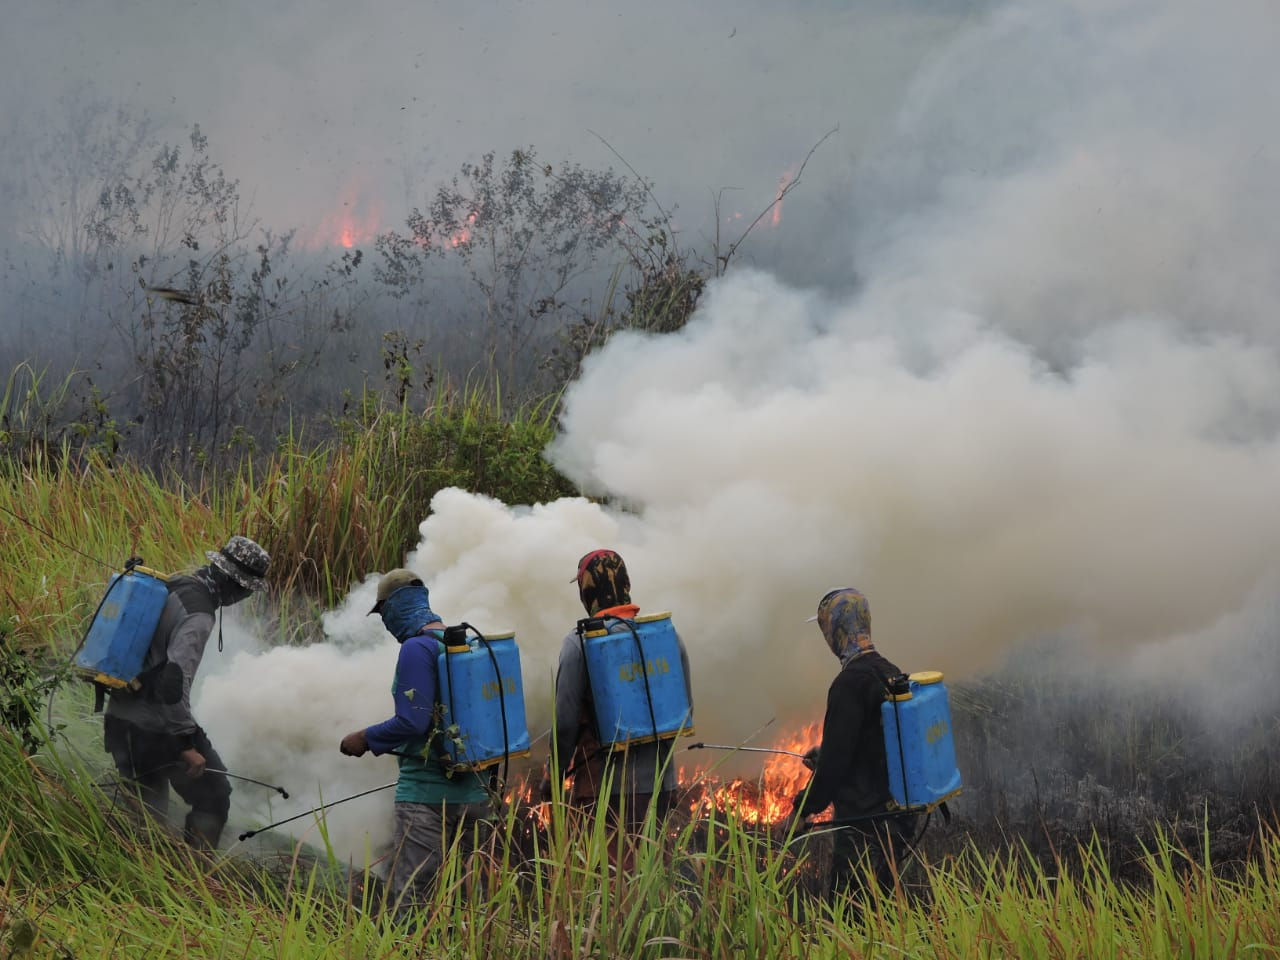 A group of Rangers with water backpacks prevent a fire from spreading into Way Kambas National Park.